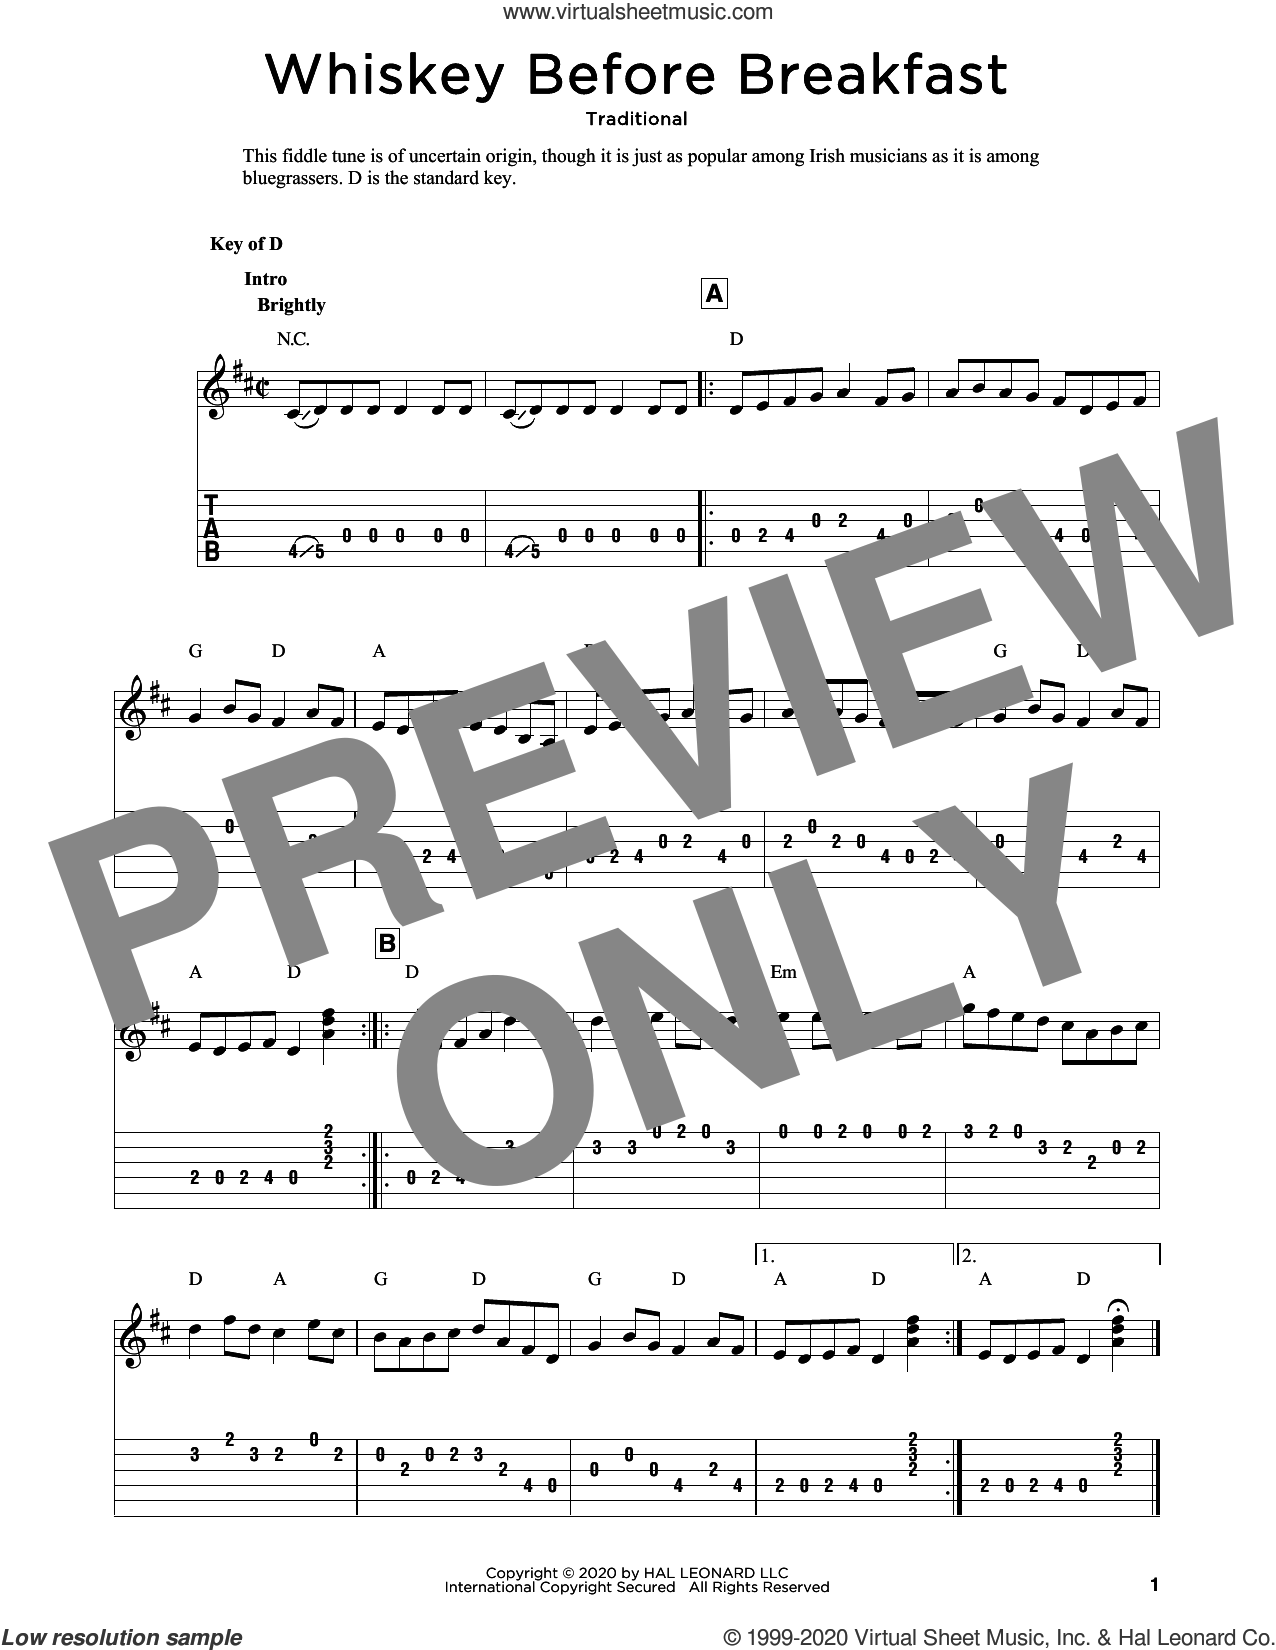 Whiskey Before Breakfast (arr. Fred Sokolow) sheet music for guitar solo  and Fred Sokolow, intermediate skill level